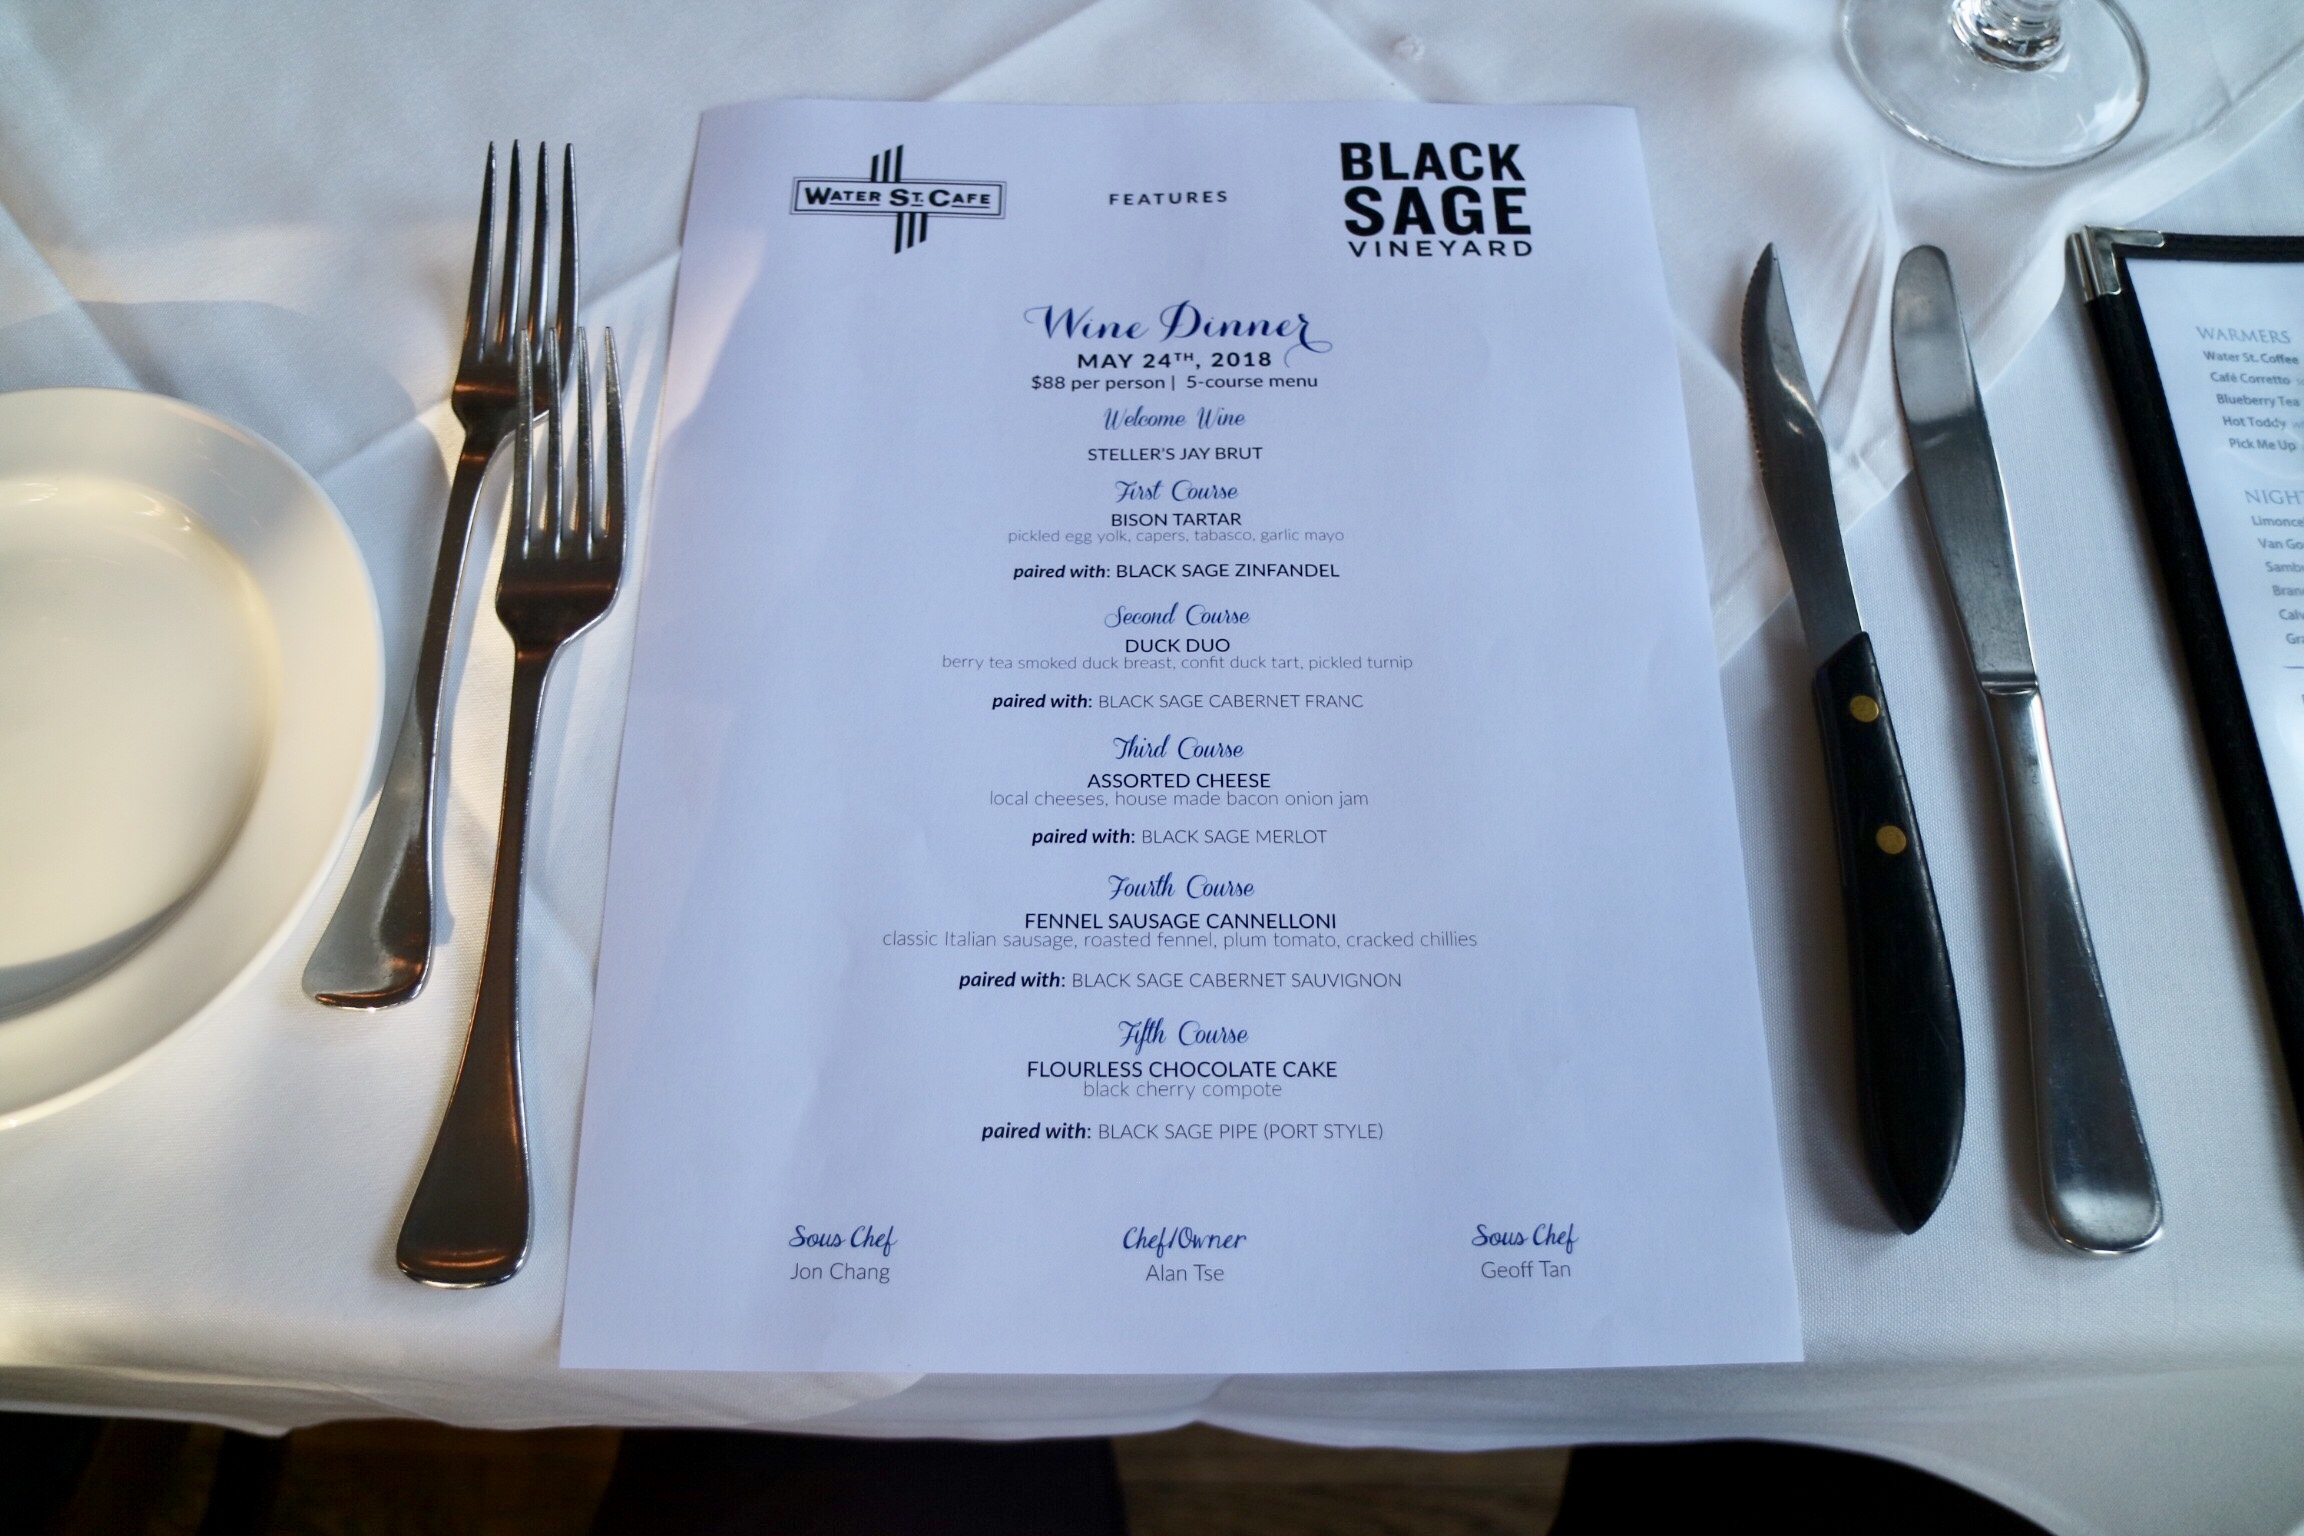 Wine Makers Dinner with Water St. Cafe & Black Sage Vinyards